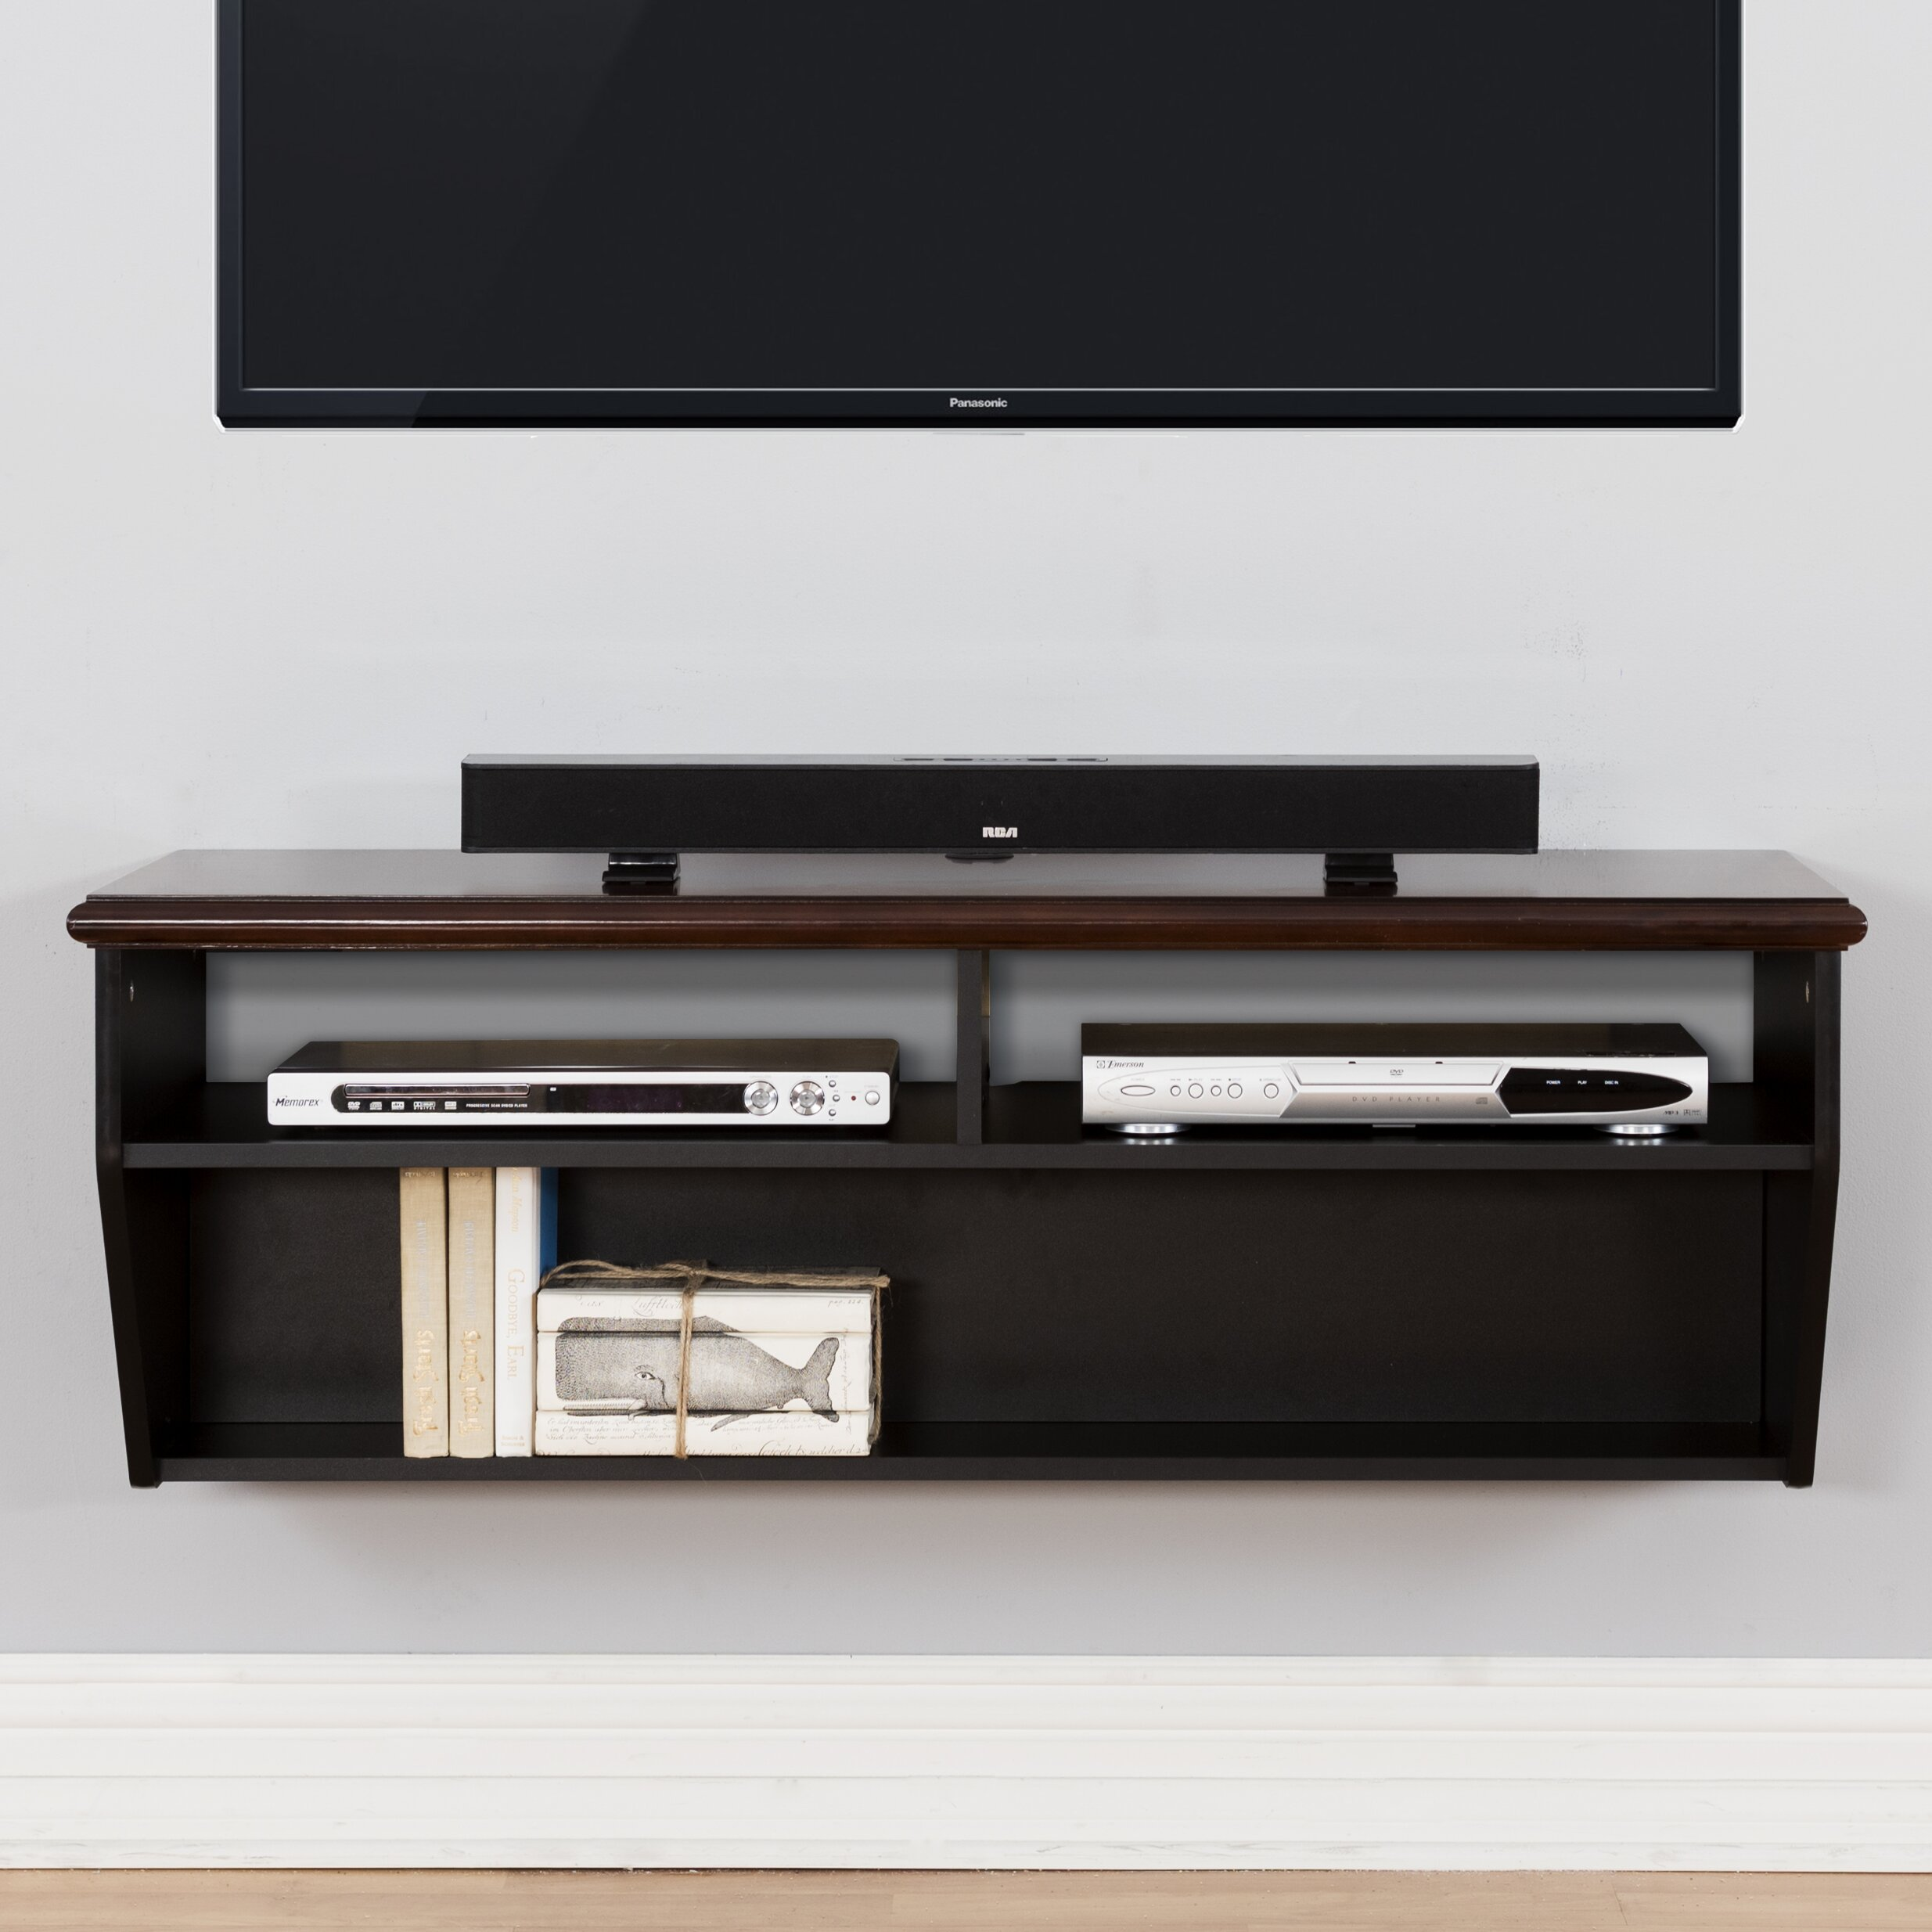 48 hardwood veneer top wall mounted tv component shelf for Wall cabinets for tv components